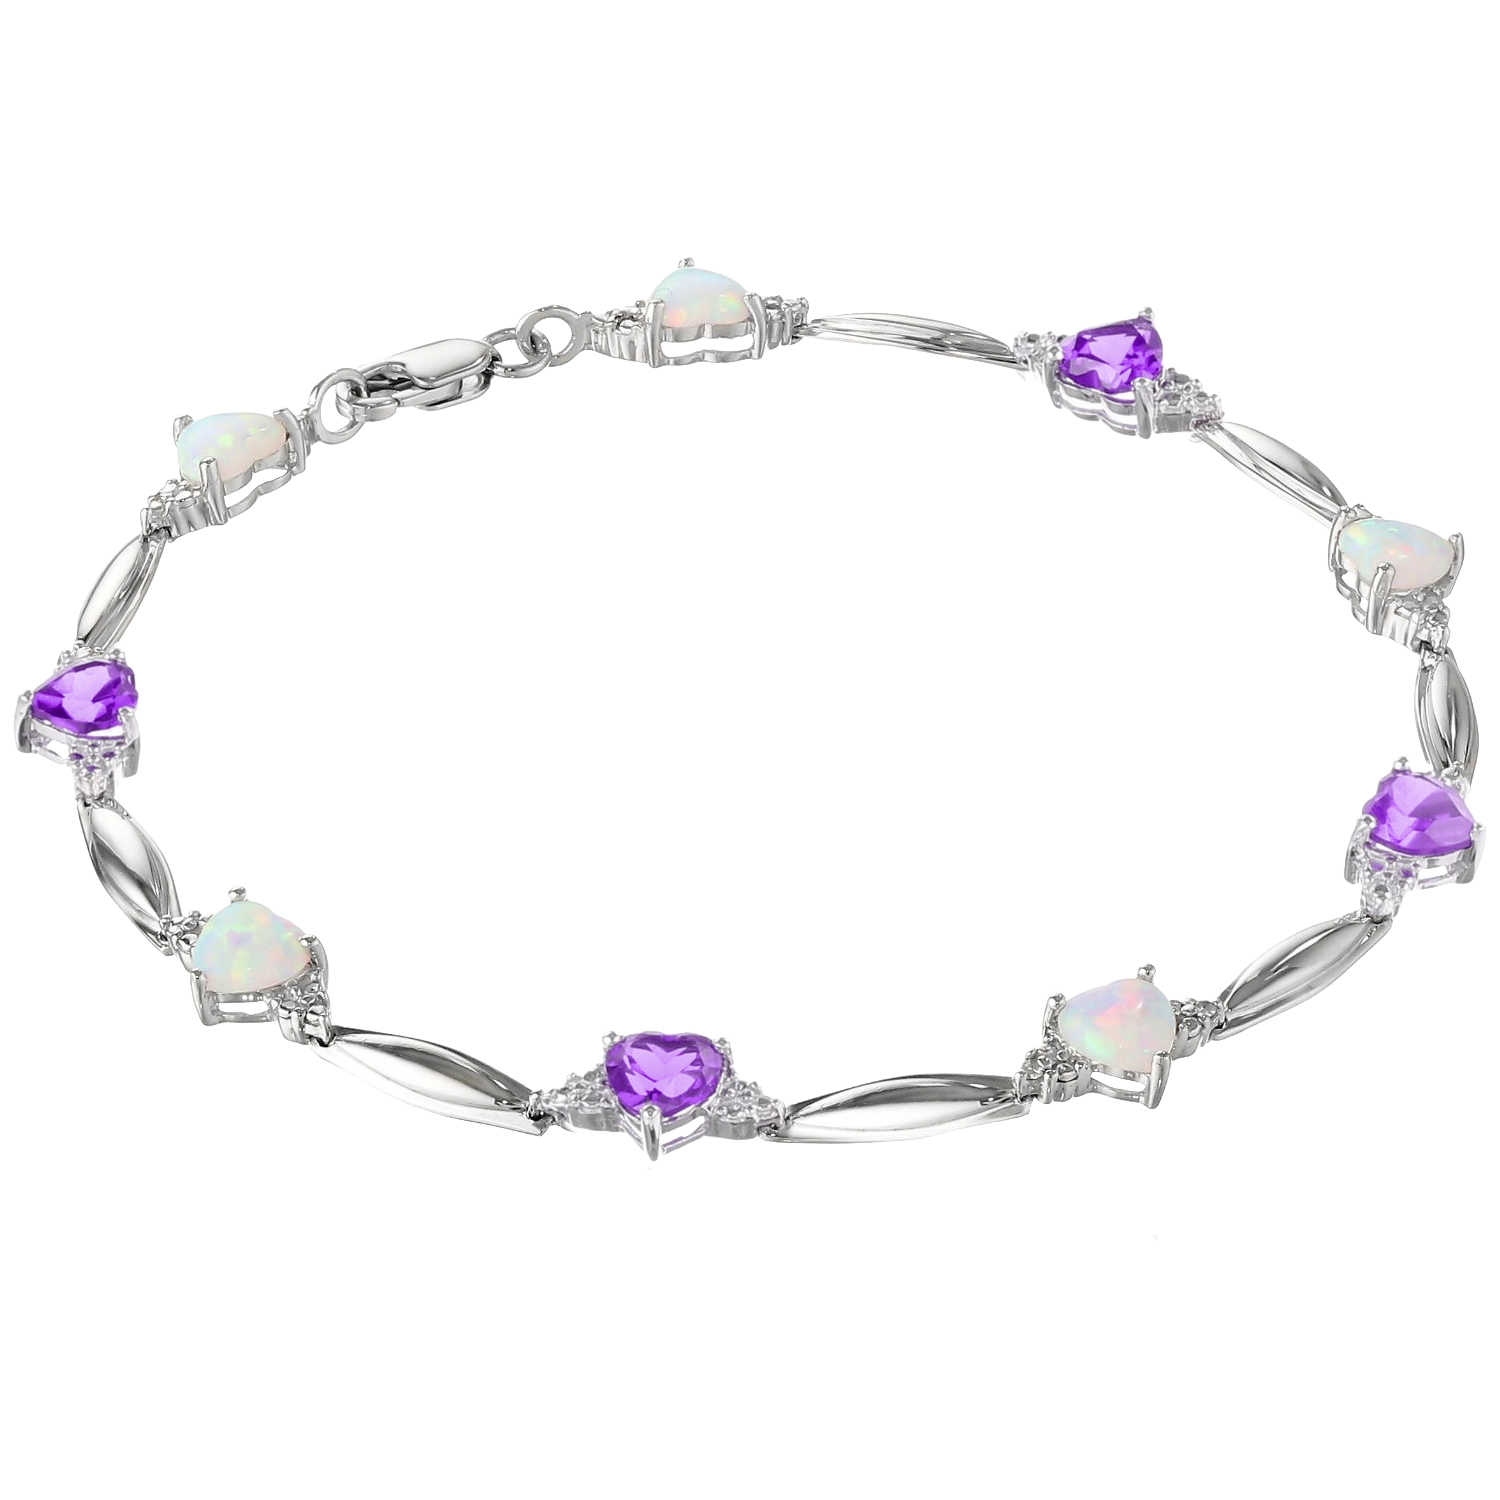 5MM Heart Opal and Amethyst .01 cttw Diamond Sterling Silver Bracelet by Metro Jewelry